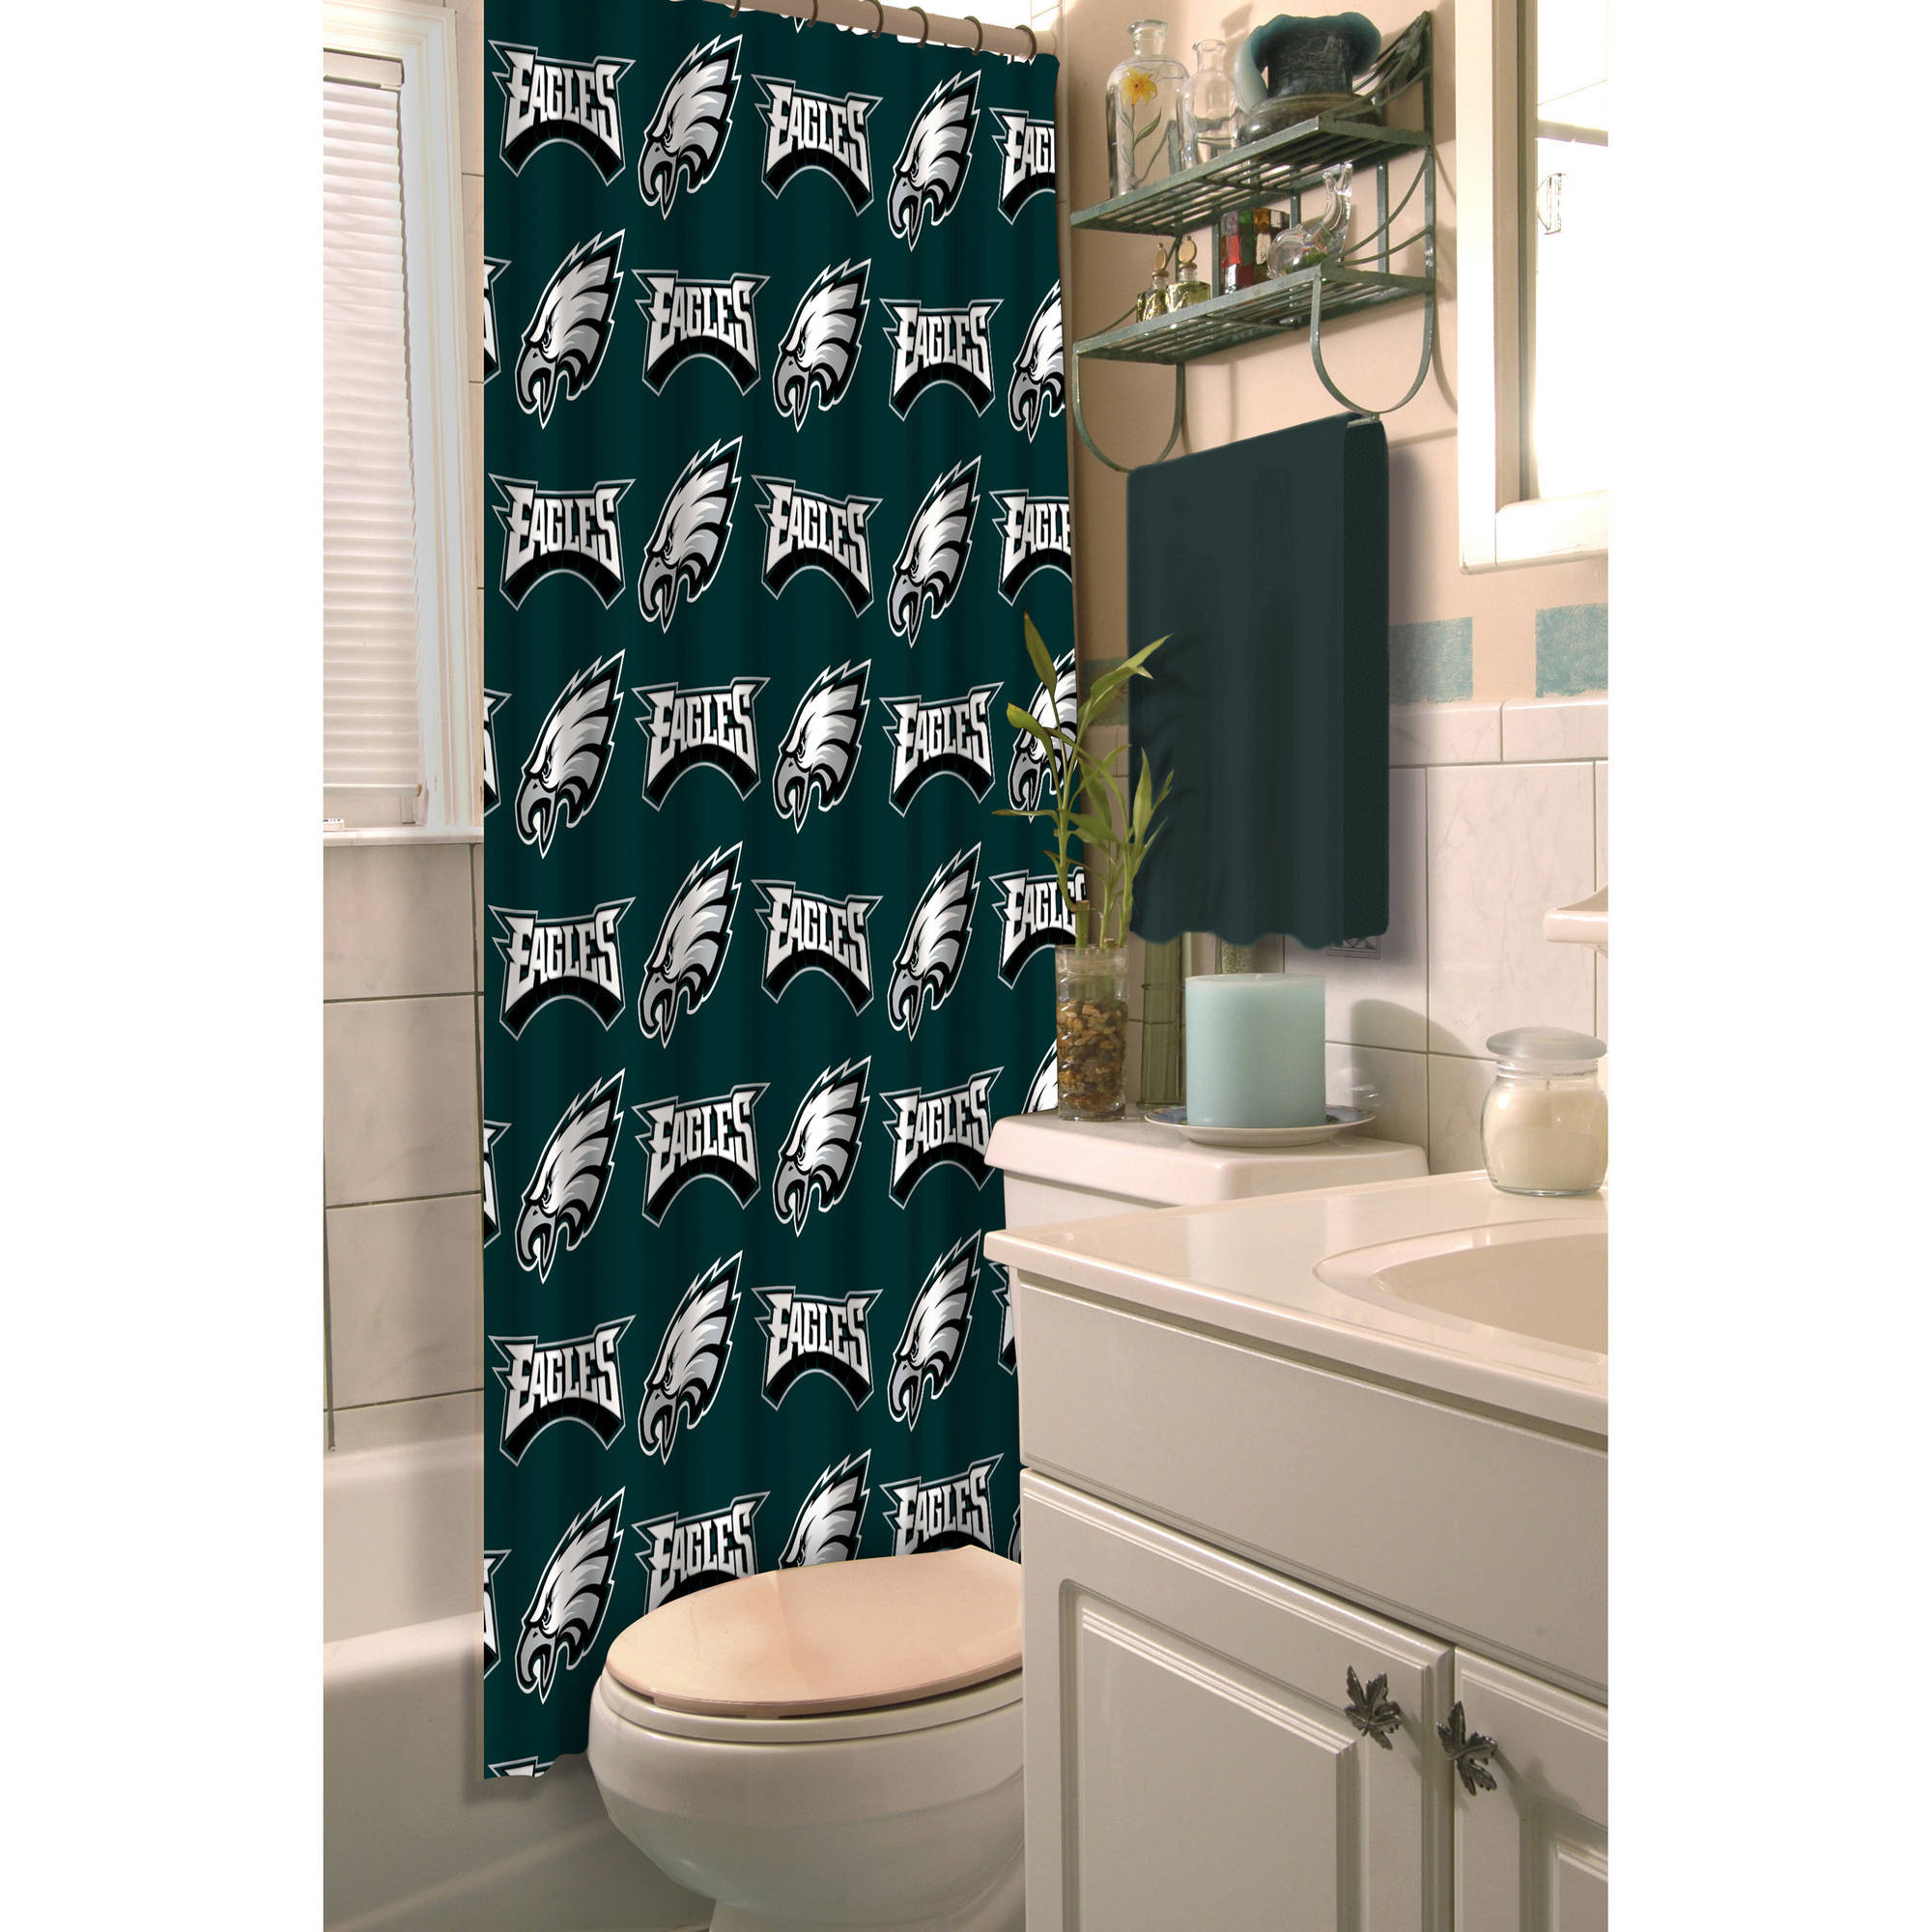 NFL Philadelphia Eagles Shower Curtain, 1 Each